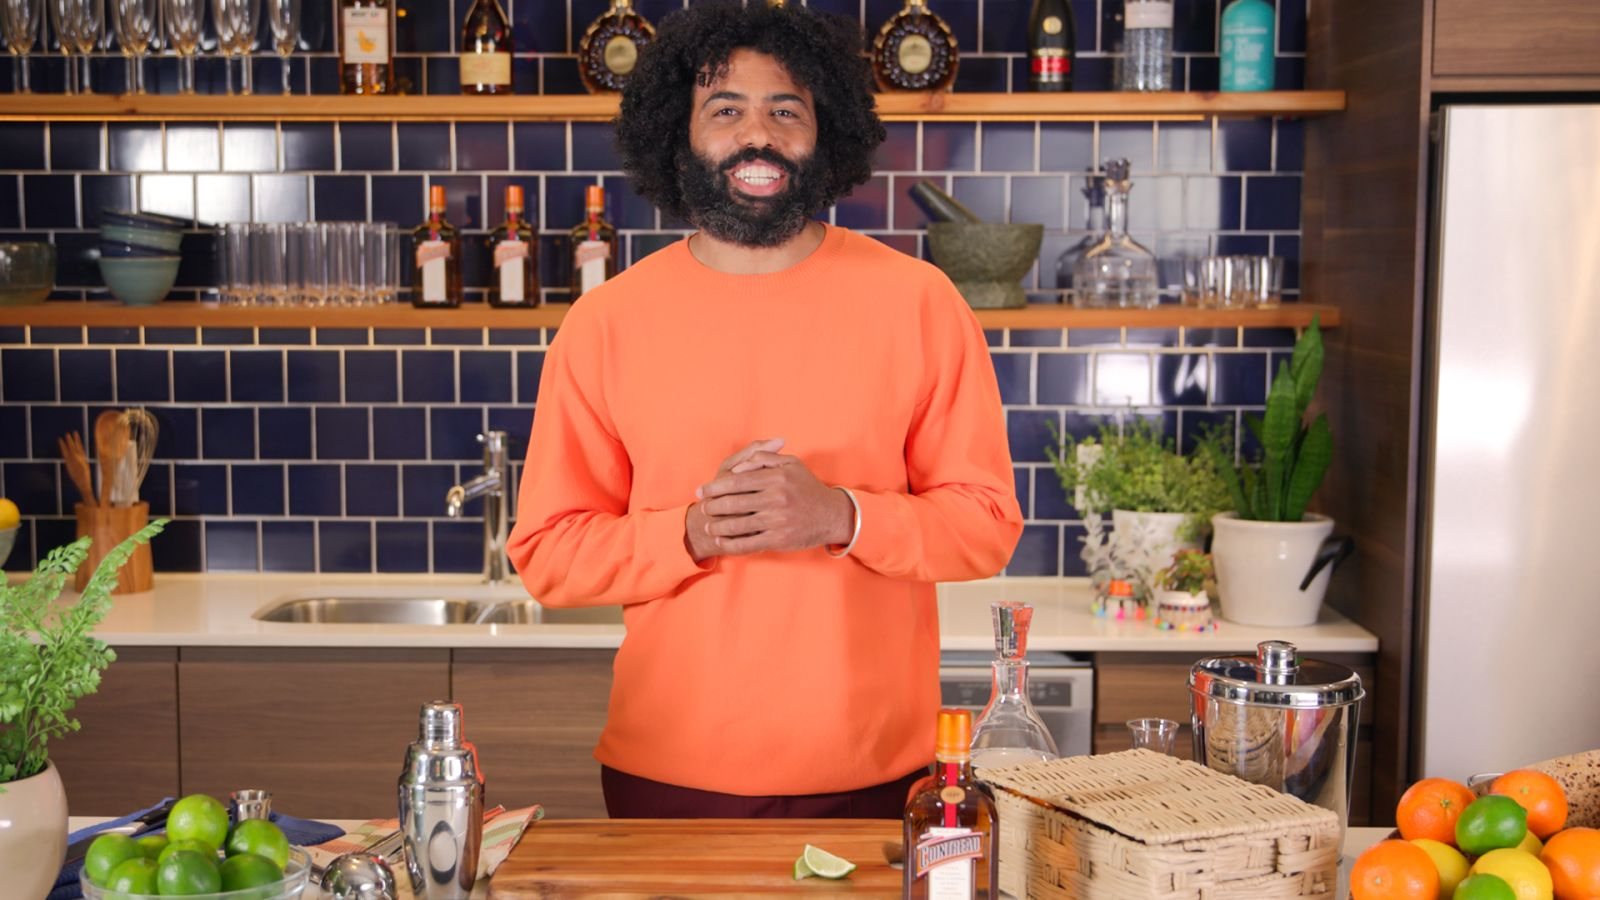 The Ultimate Margarita Showdown with Daveed Diggs